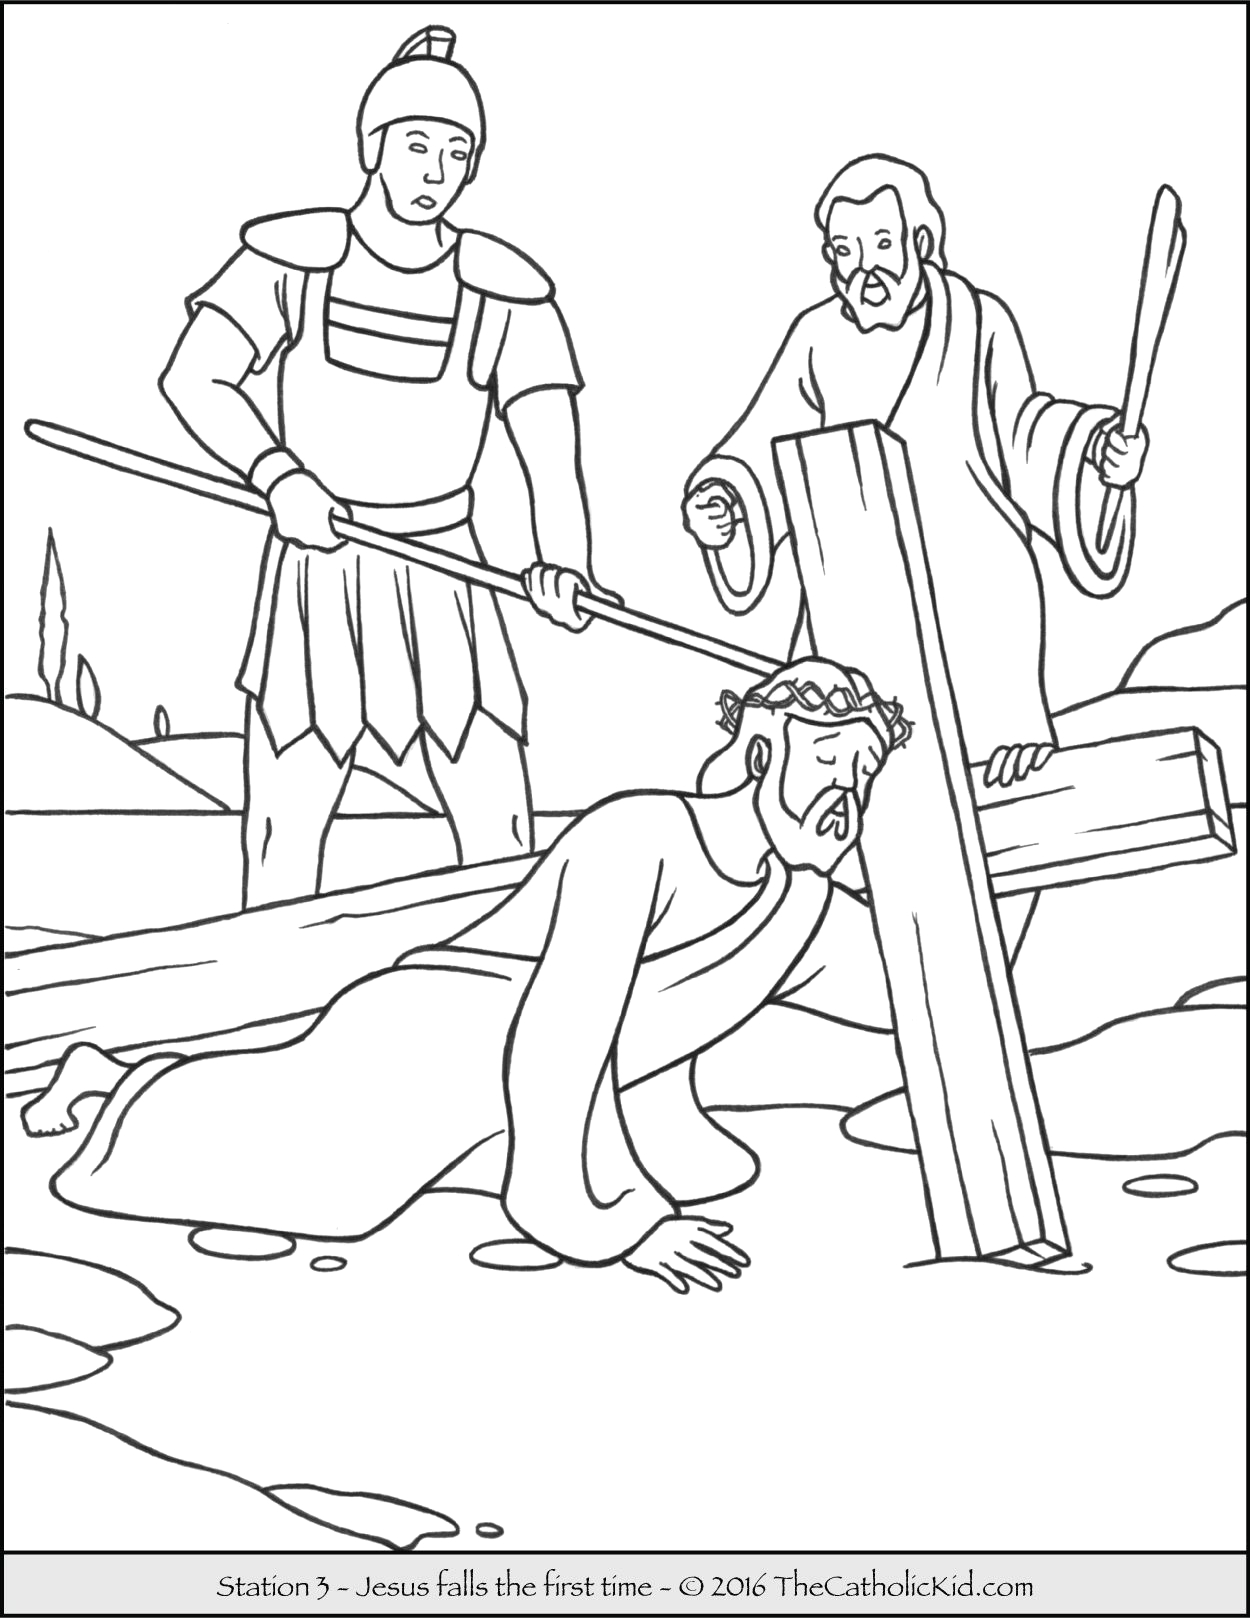 Stations Of the Cross Coloring Pages for Children Stations the Cross Coloring Page Coloring Home